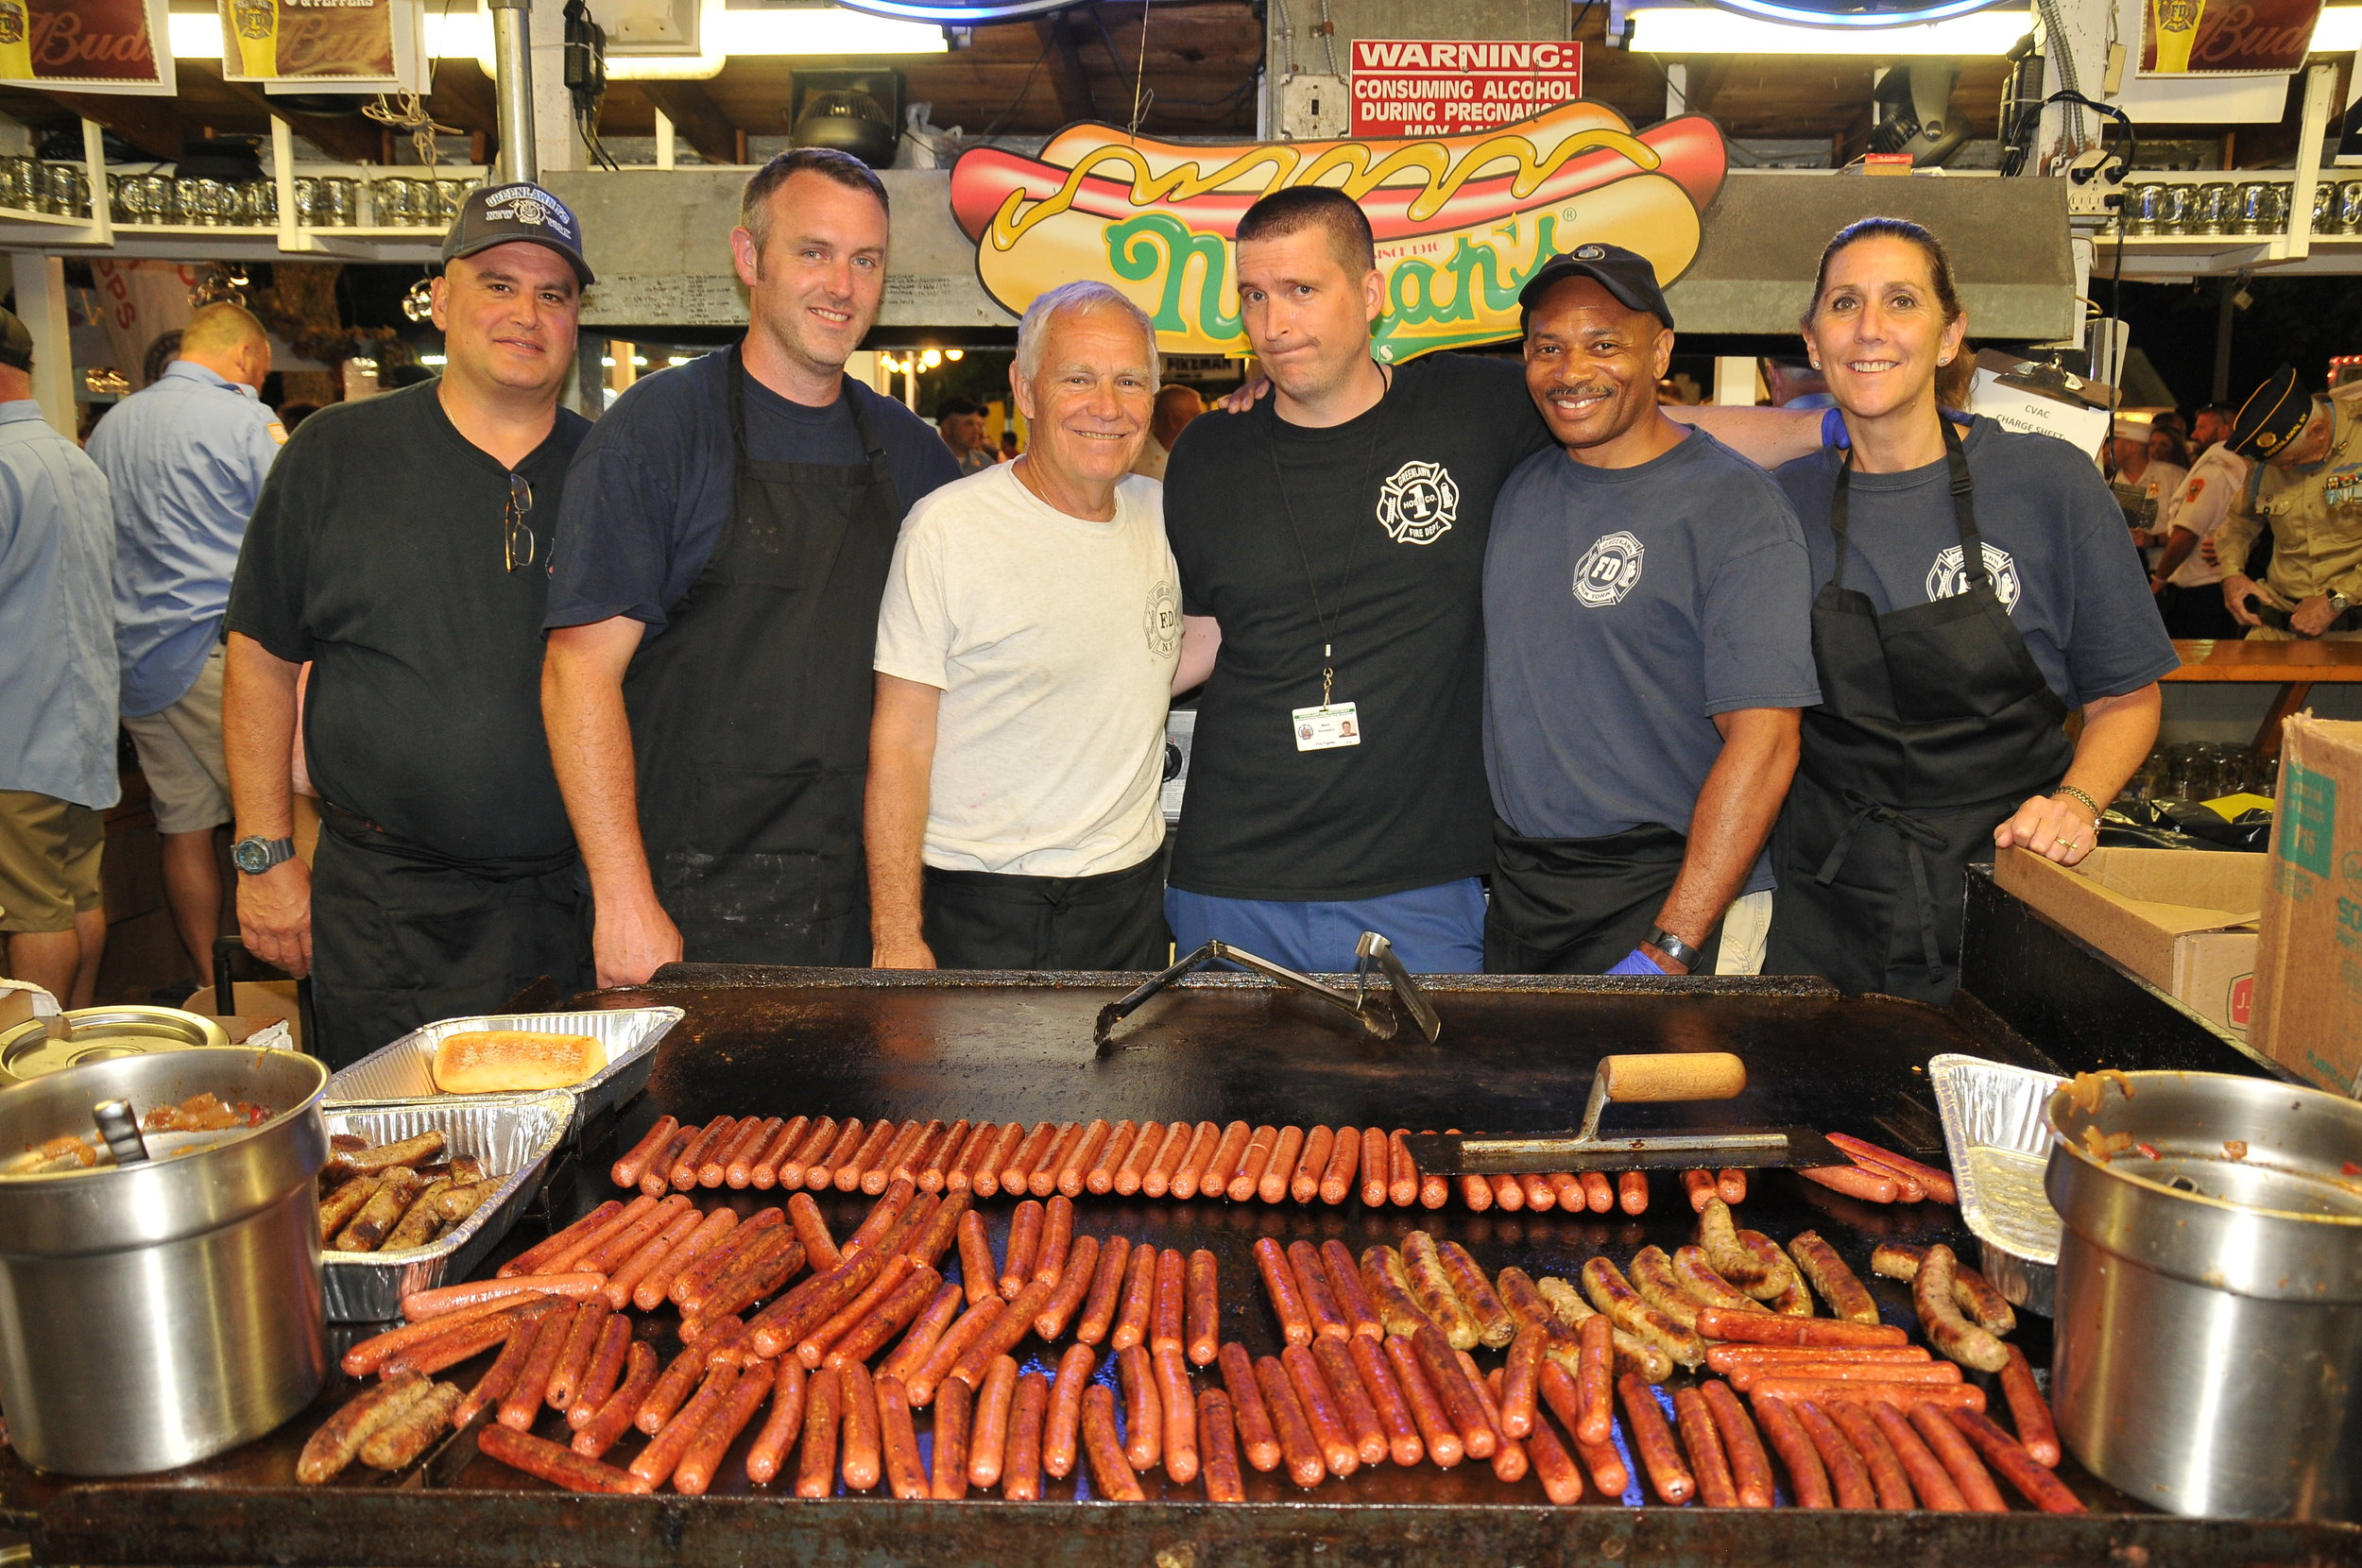 There was plenty of food at the fair, including these hot dogs and sausages cooked up by Greenlawn firefighters.   Photo Courtesy of Steve Silverman